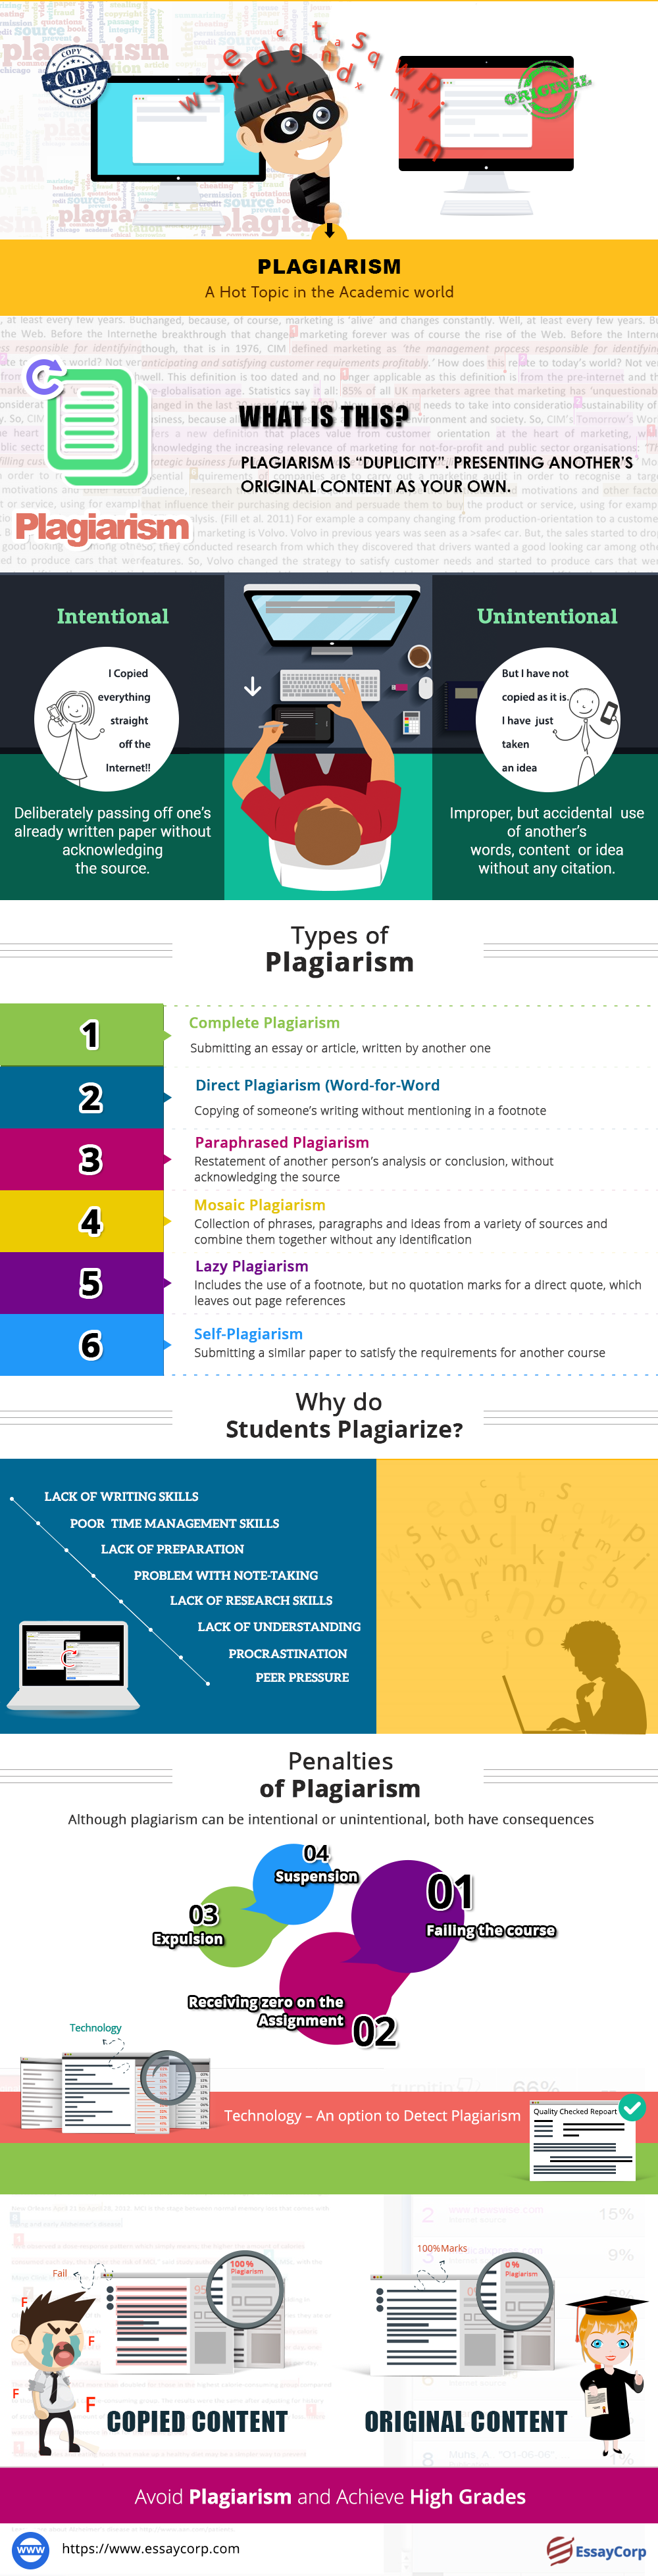 know all about plagiarism via info graphic essaycorp nowadays students look for the assignments that contain zero plagiarism but what does it actually mean that is important to know